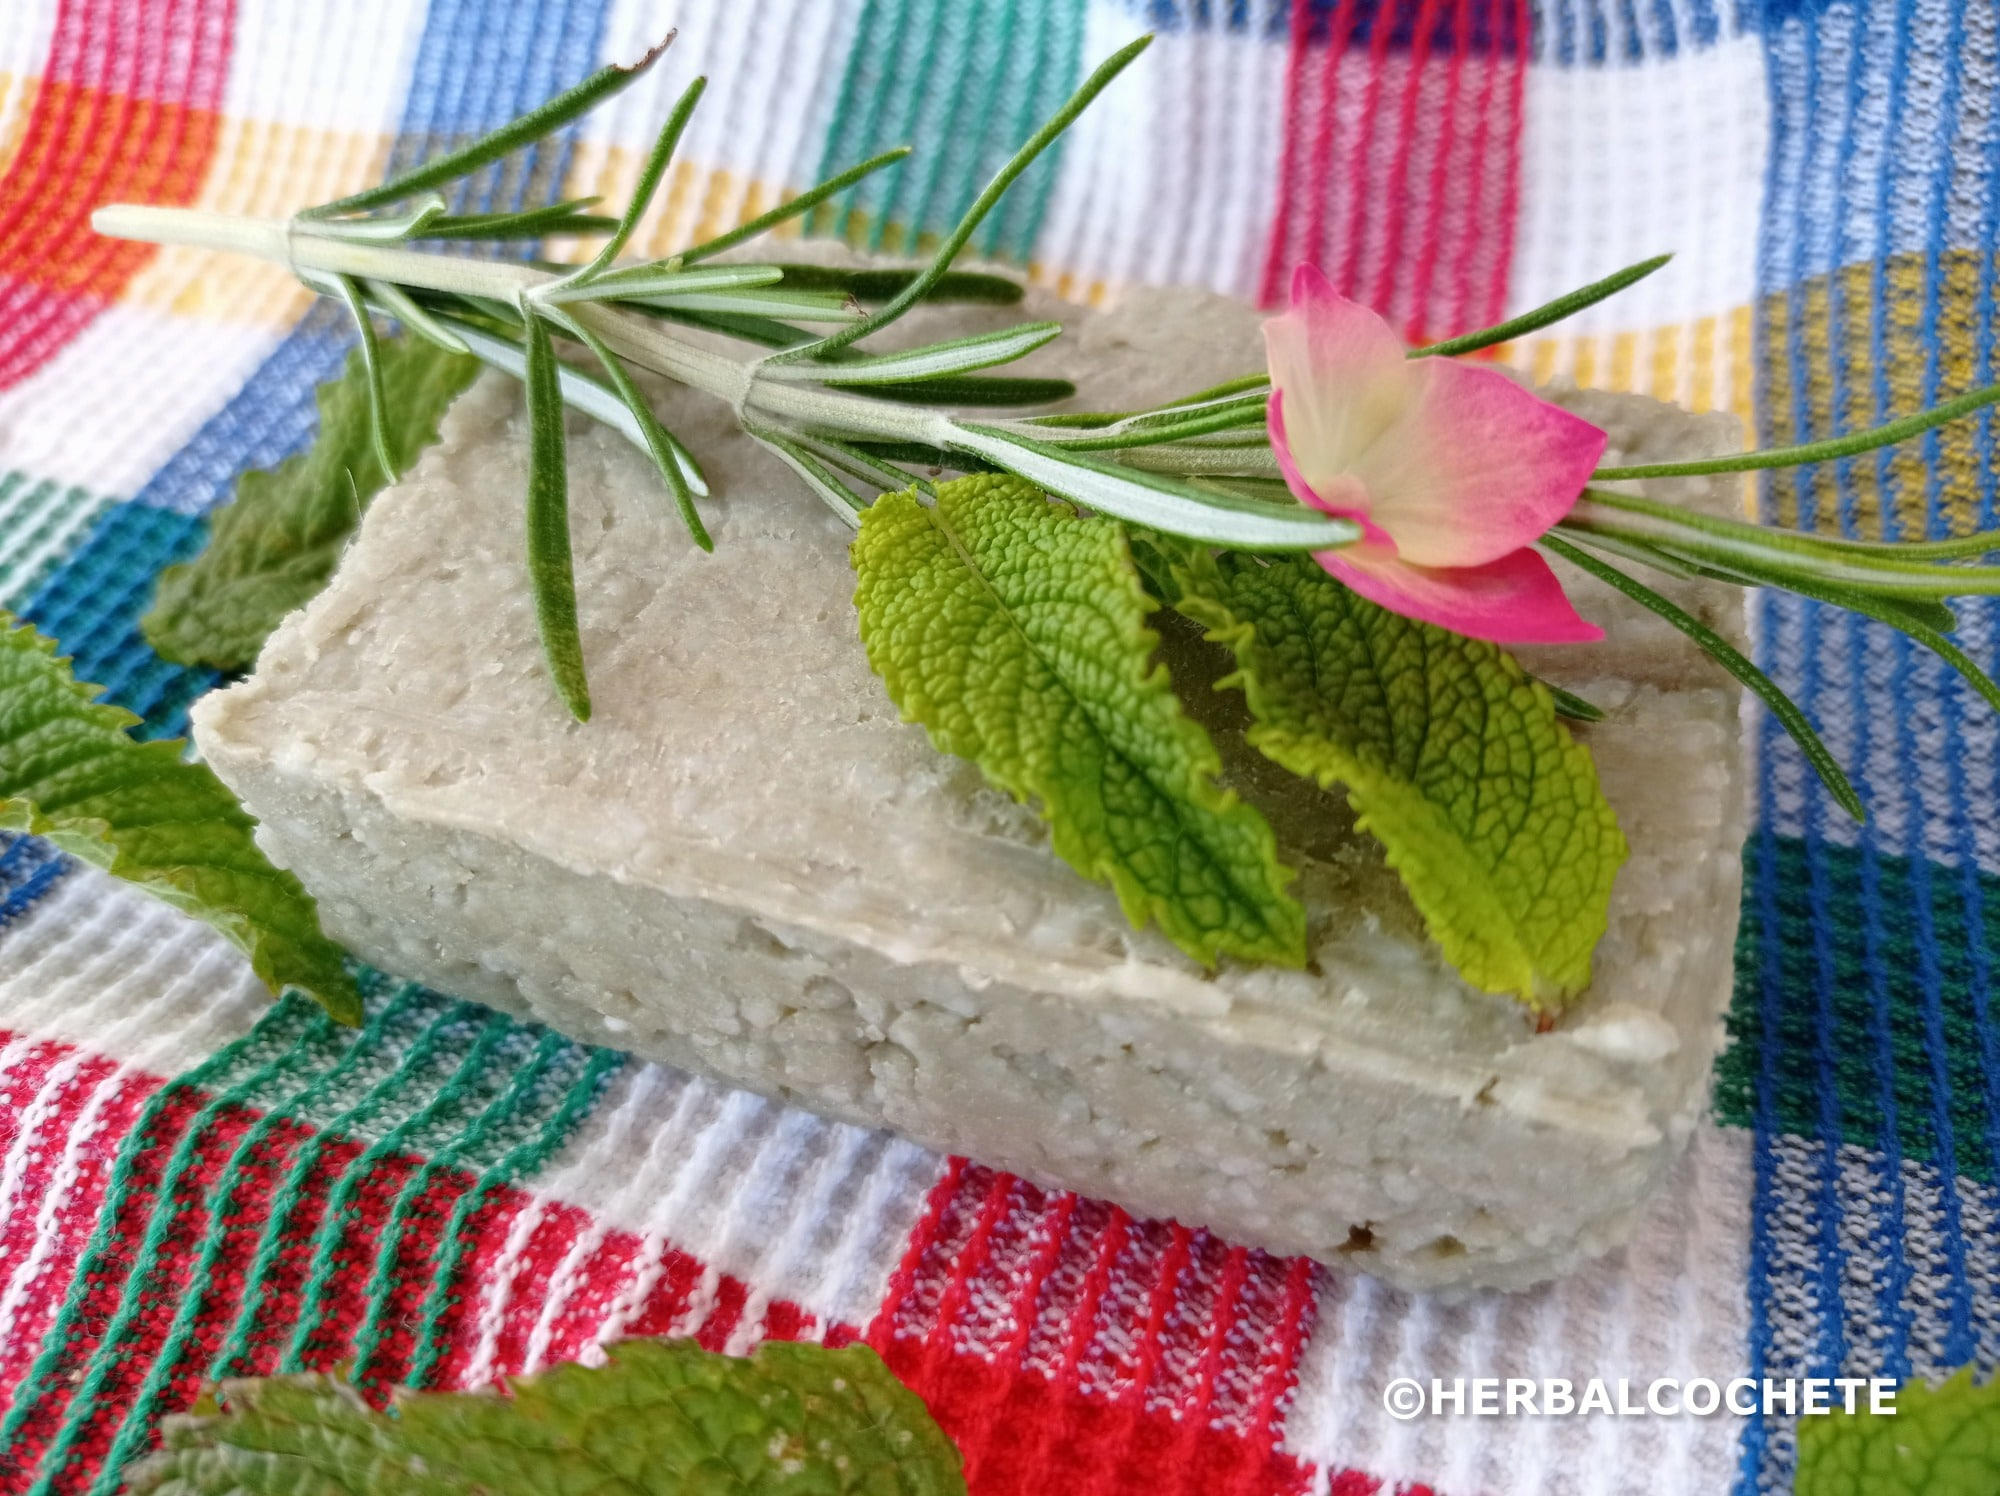 Green clay shampoo bar with herbs and flowers for decoration